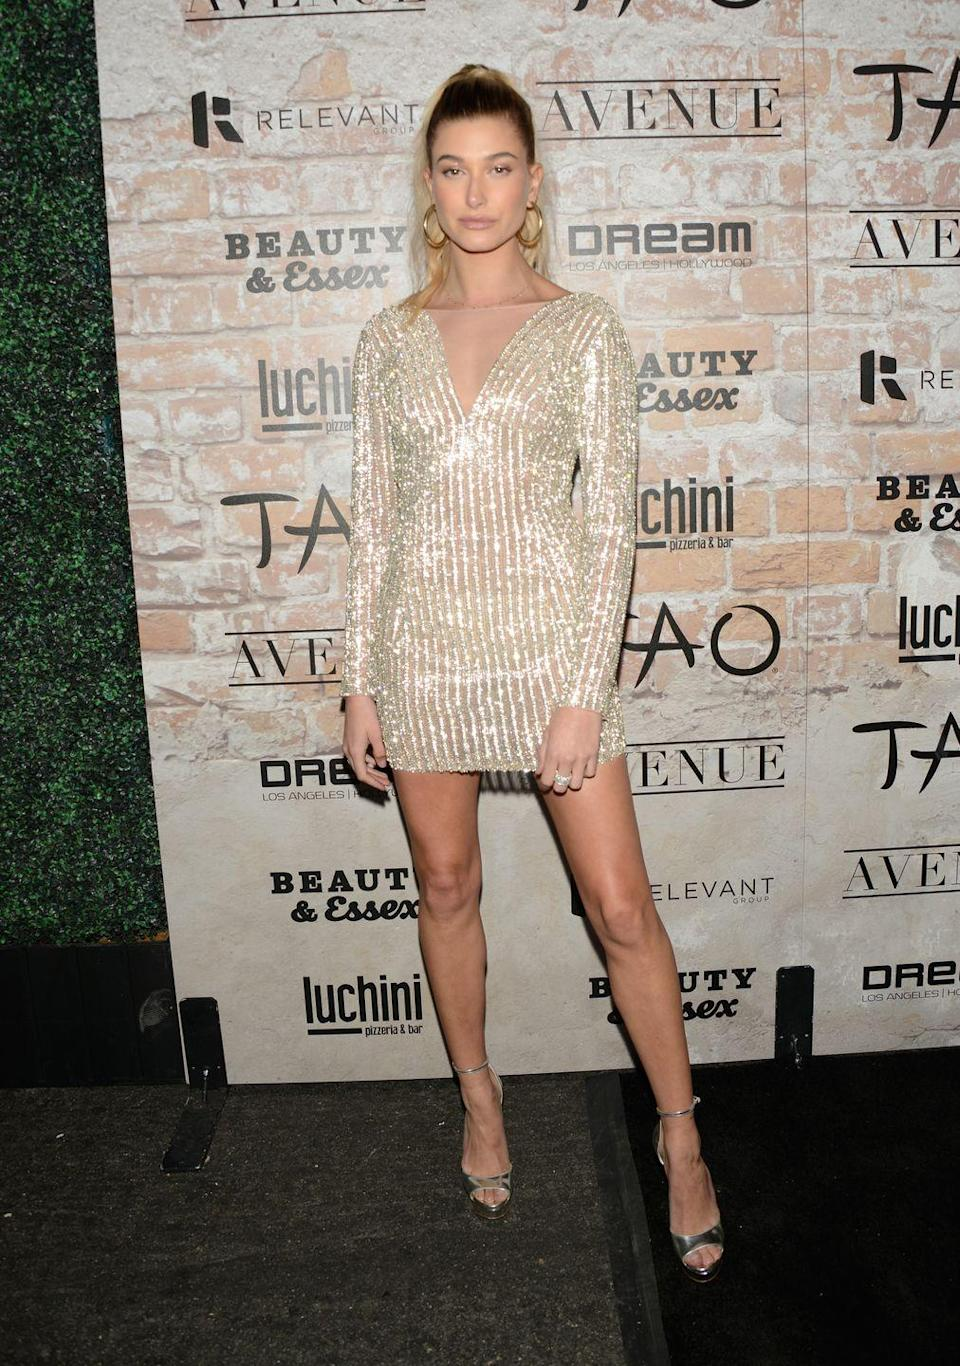 "<p>Hailey Baldwin attends day one of TAO, Beauty + Essex, Avenue + Luchini LA Grand Opening<span class=""redactor-invisible-space""> in California in a shimmery mini dress.</span></p>"